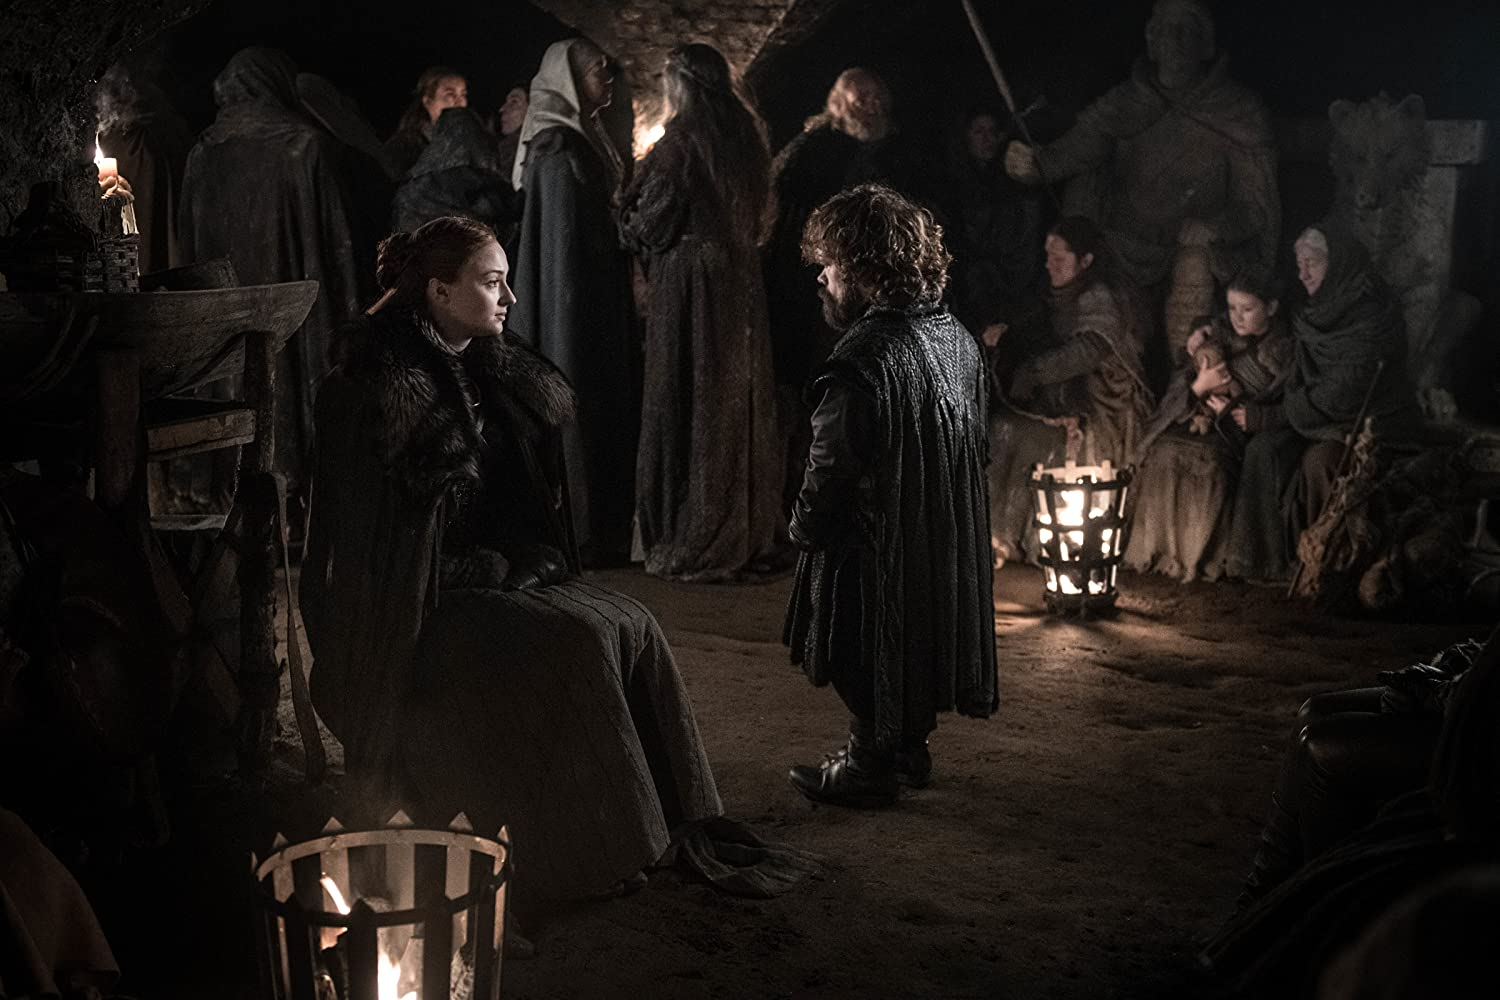 Peter Dinklage and Sophie Turner in Game of Thrones (2011)